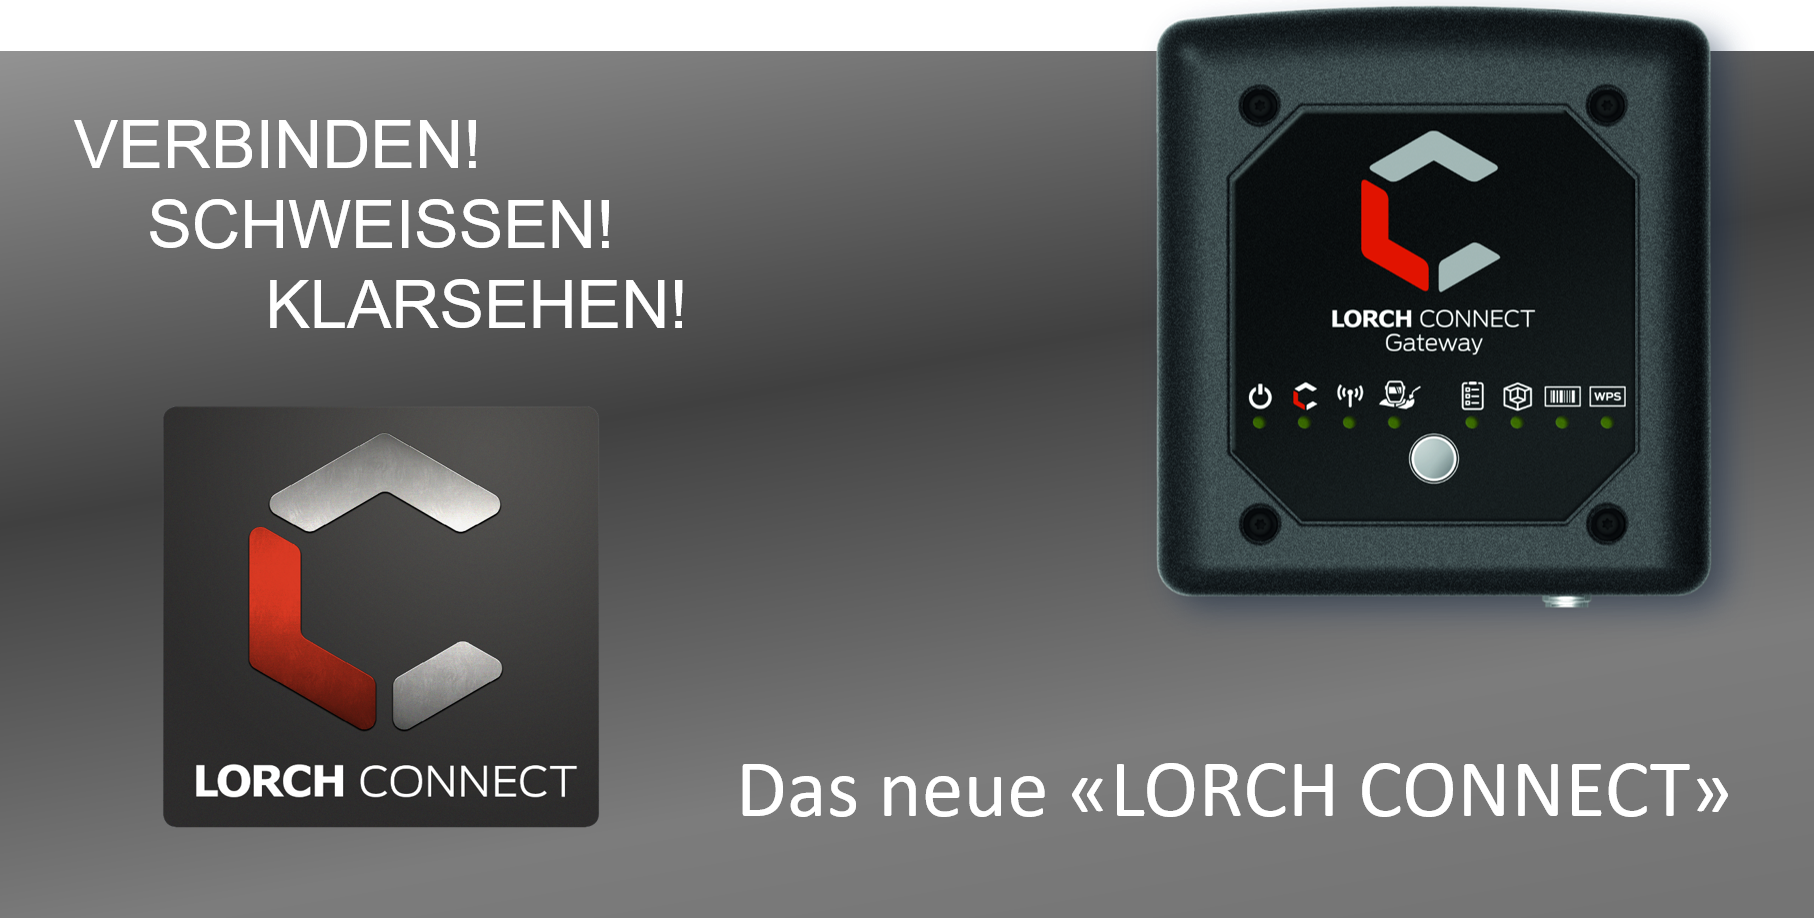 Lorch Connect